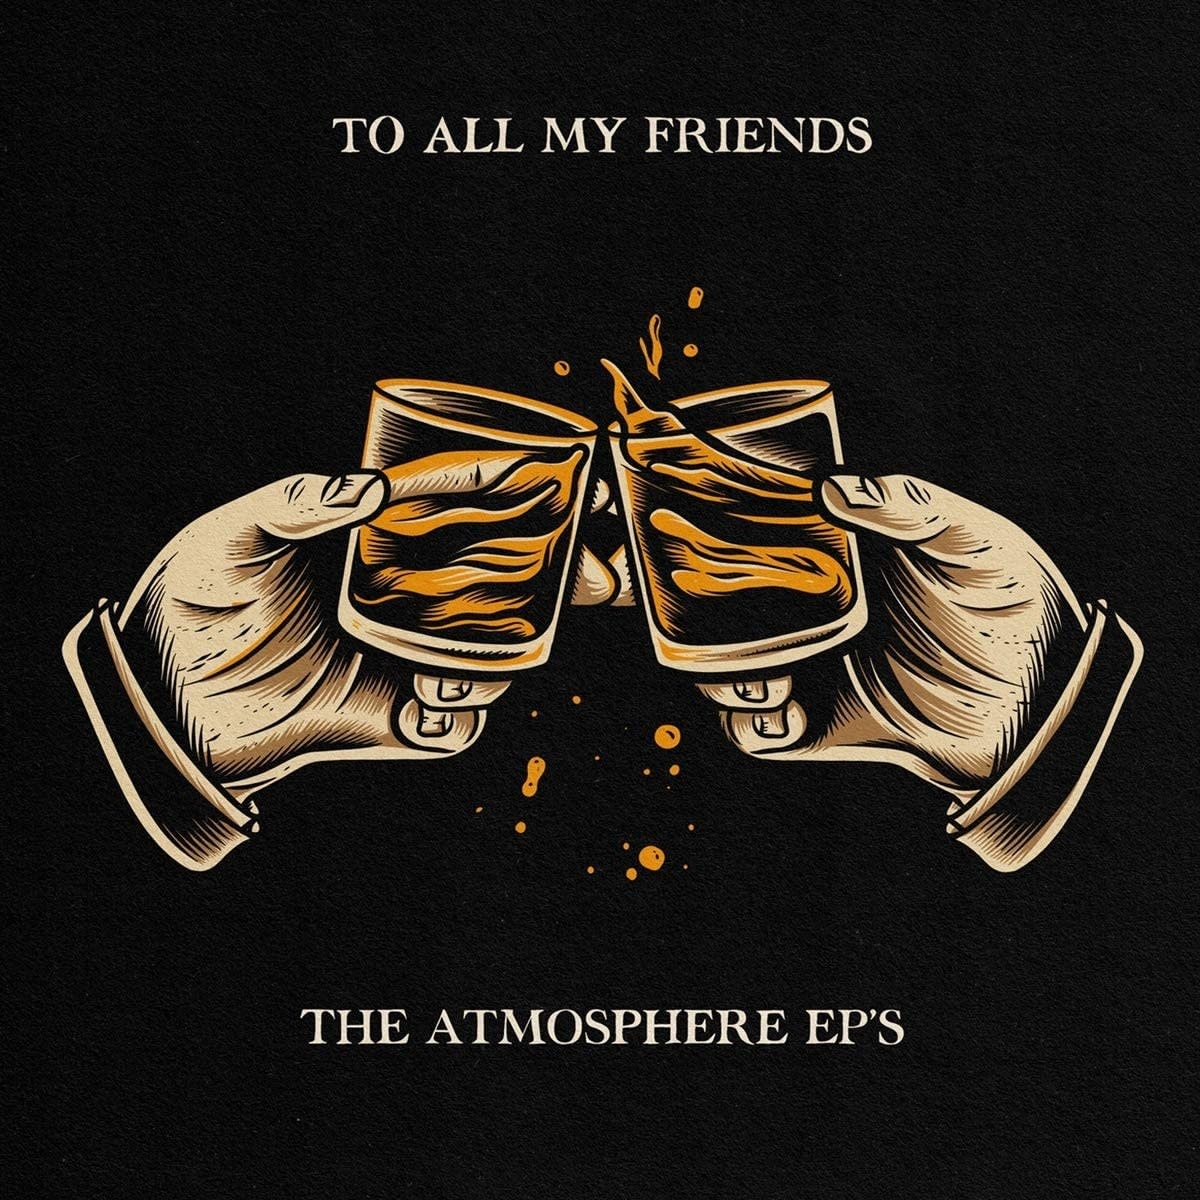 Atmosphere – To All My Friends, Blood Makes The Blade Holy: The Atmosphere EP's